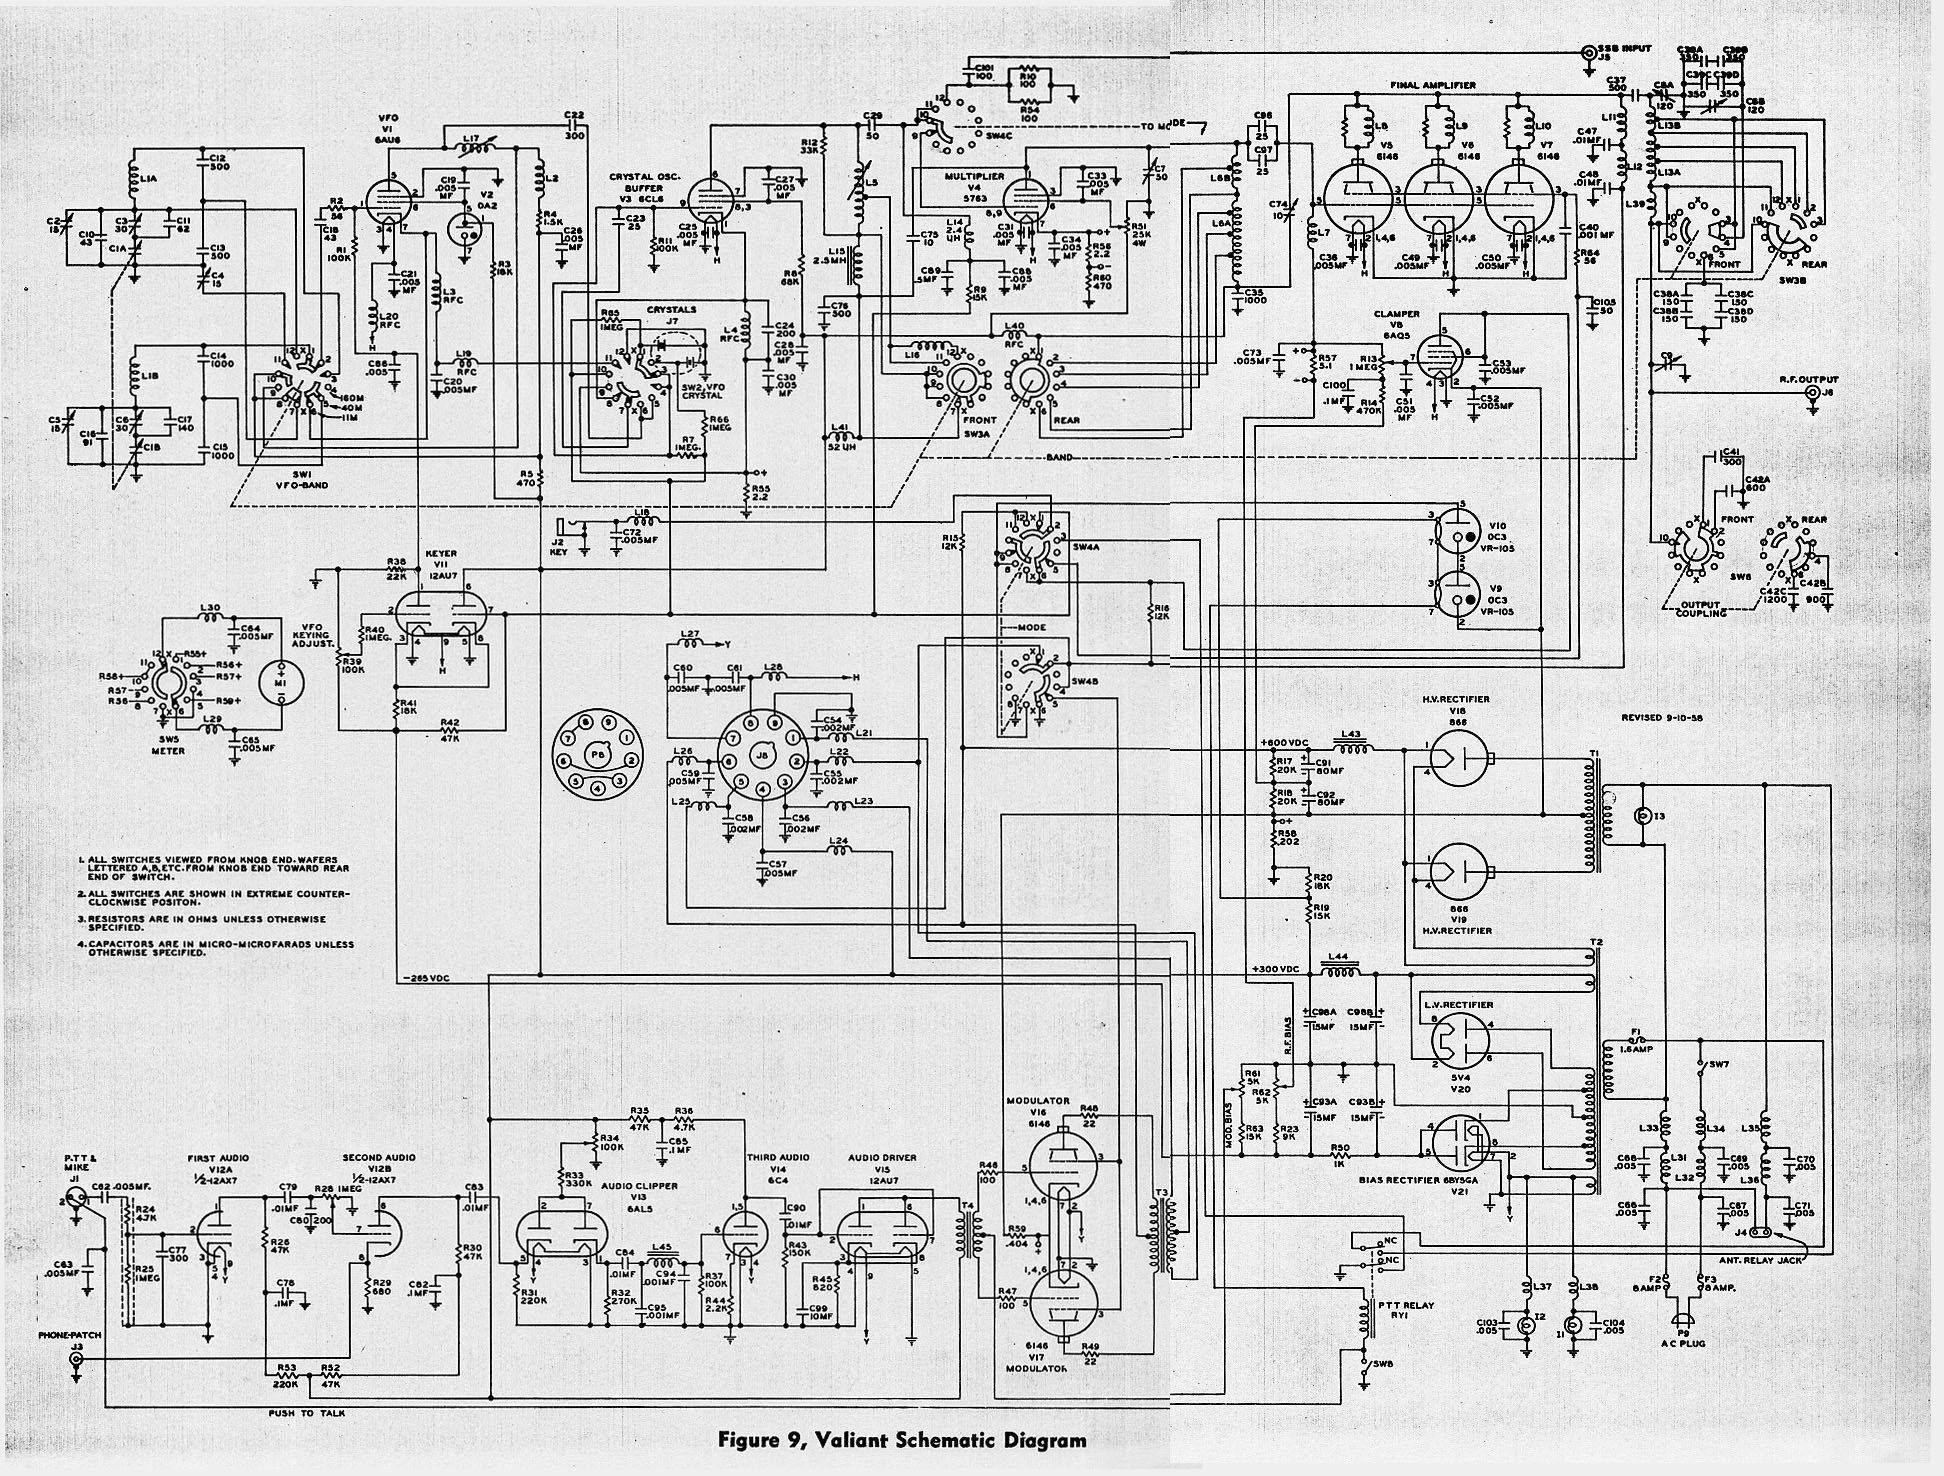 radio_Johnson_Viking_Valiant_schematic 1955 1962 e f johnson \